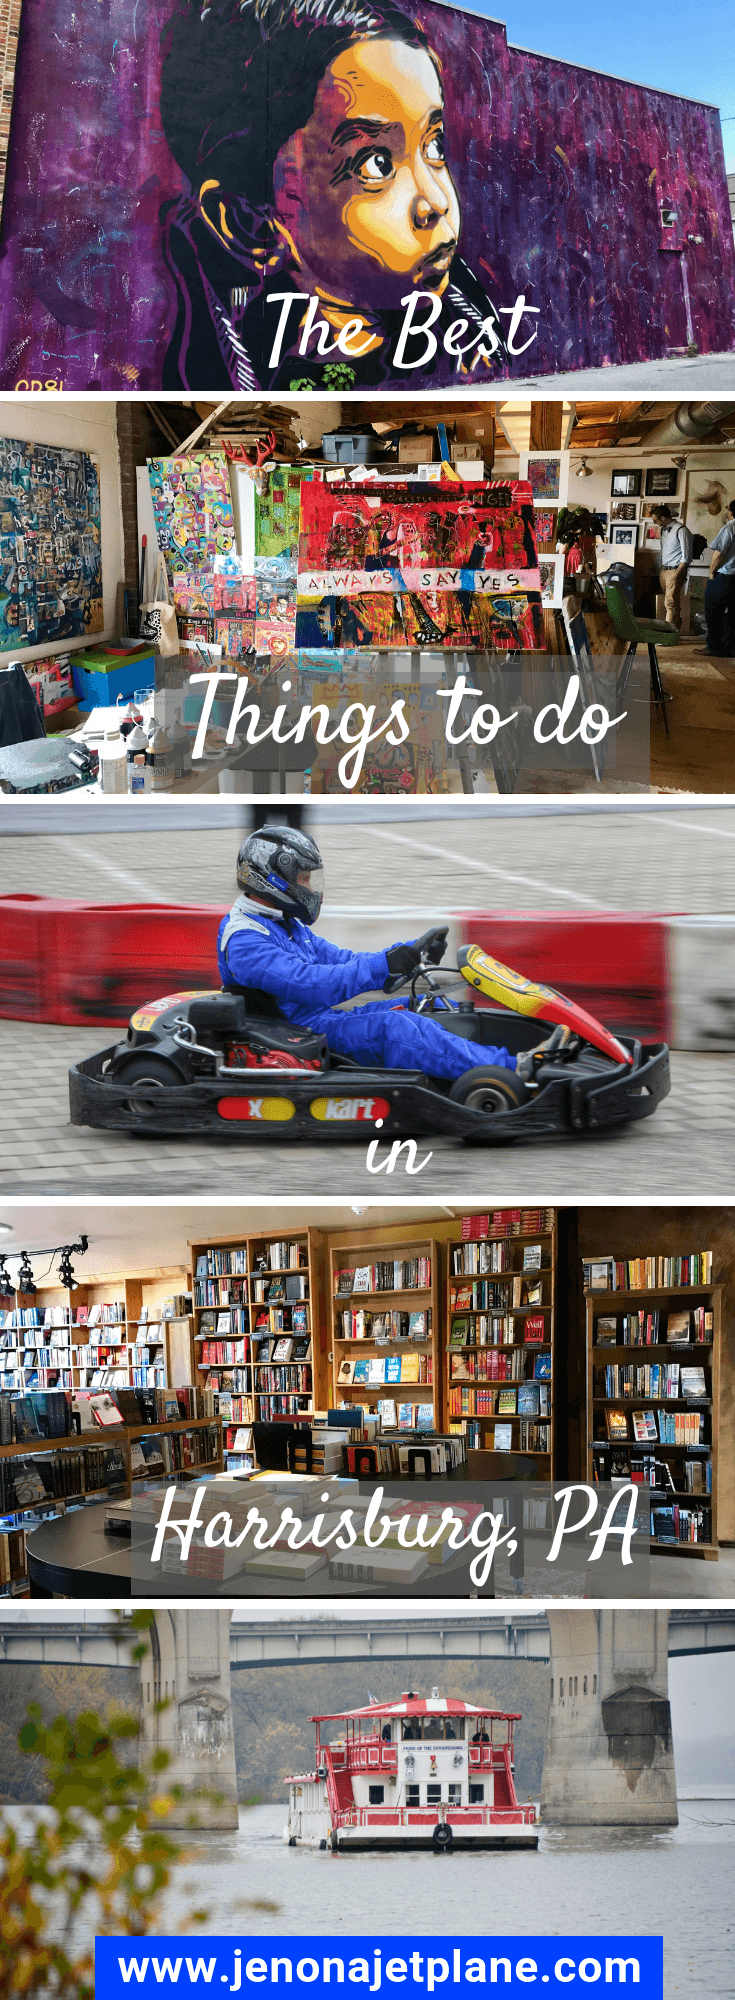 Want to know the best things to do in Harrisburg, PA? From chocolate to caverns, here are 12 activities you can't miss! Save to your travel board for inspiration. #harrisburgpa #pennsylvaniatravel